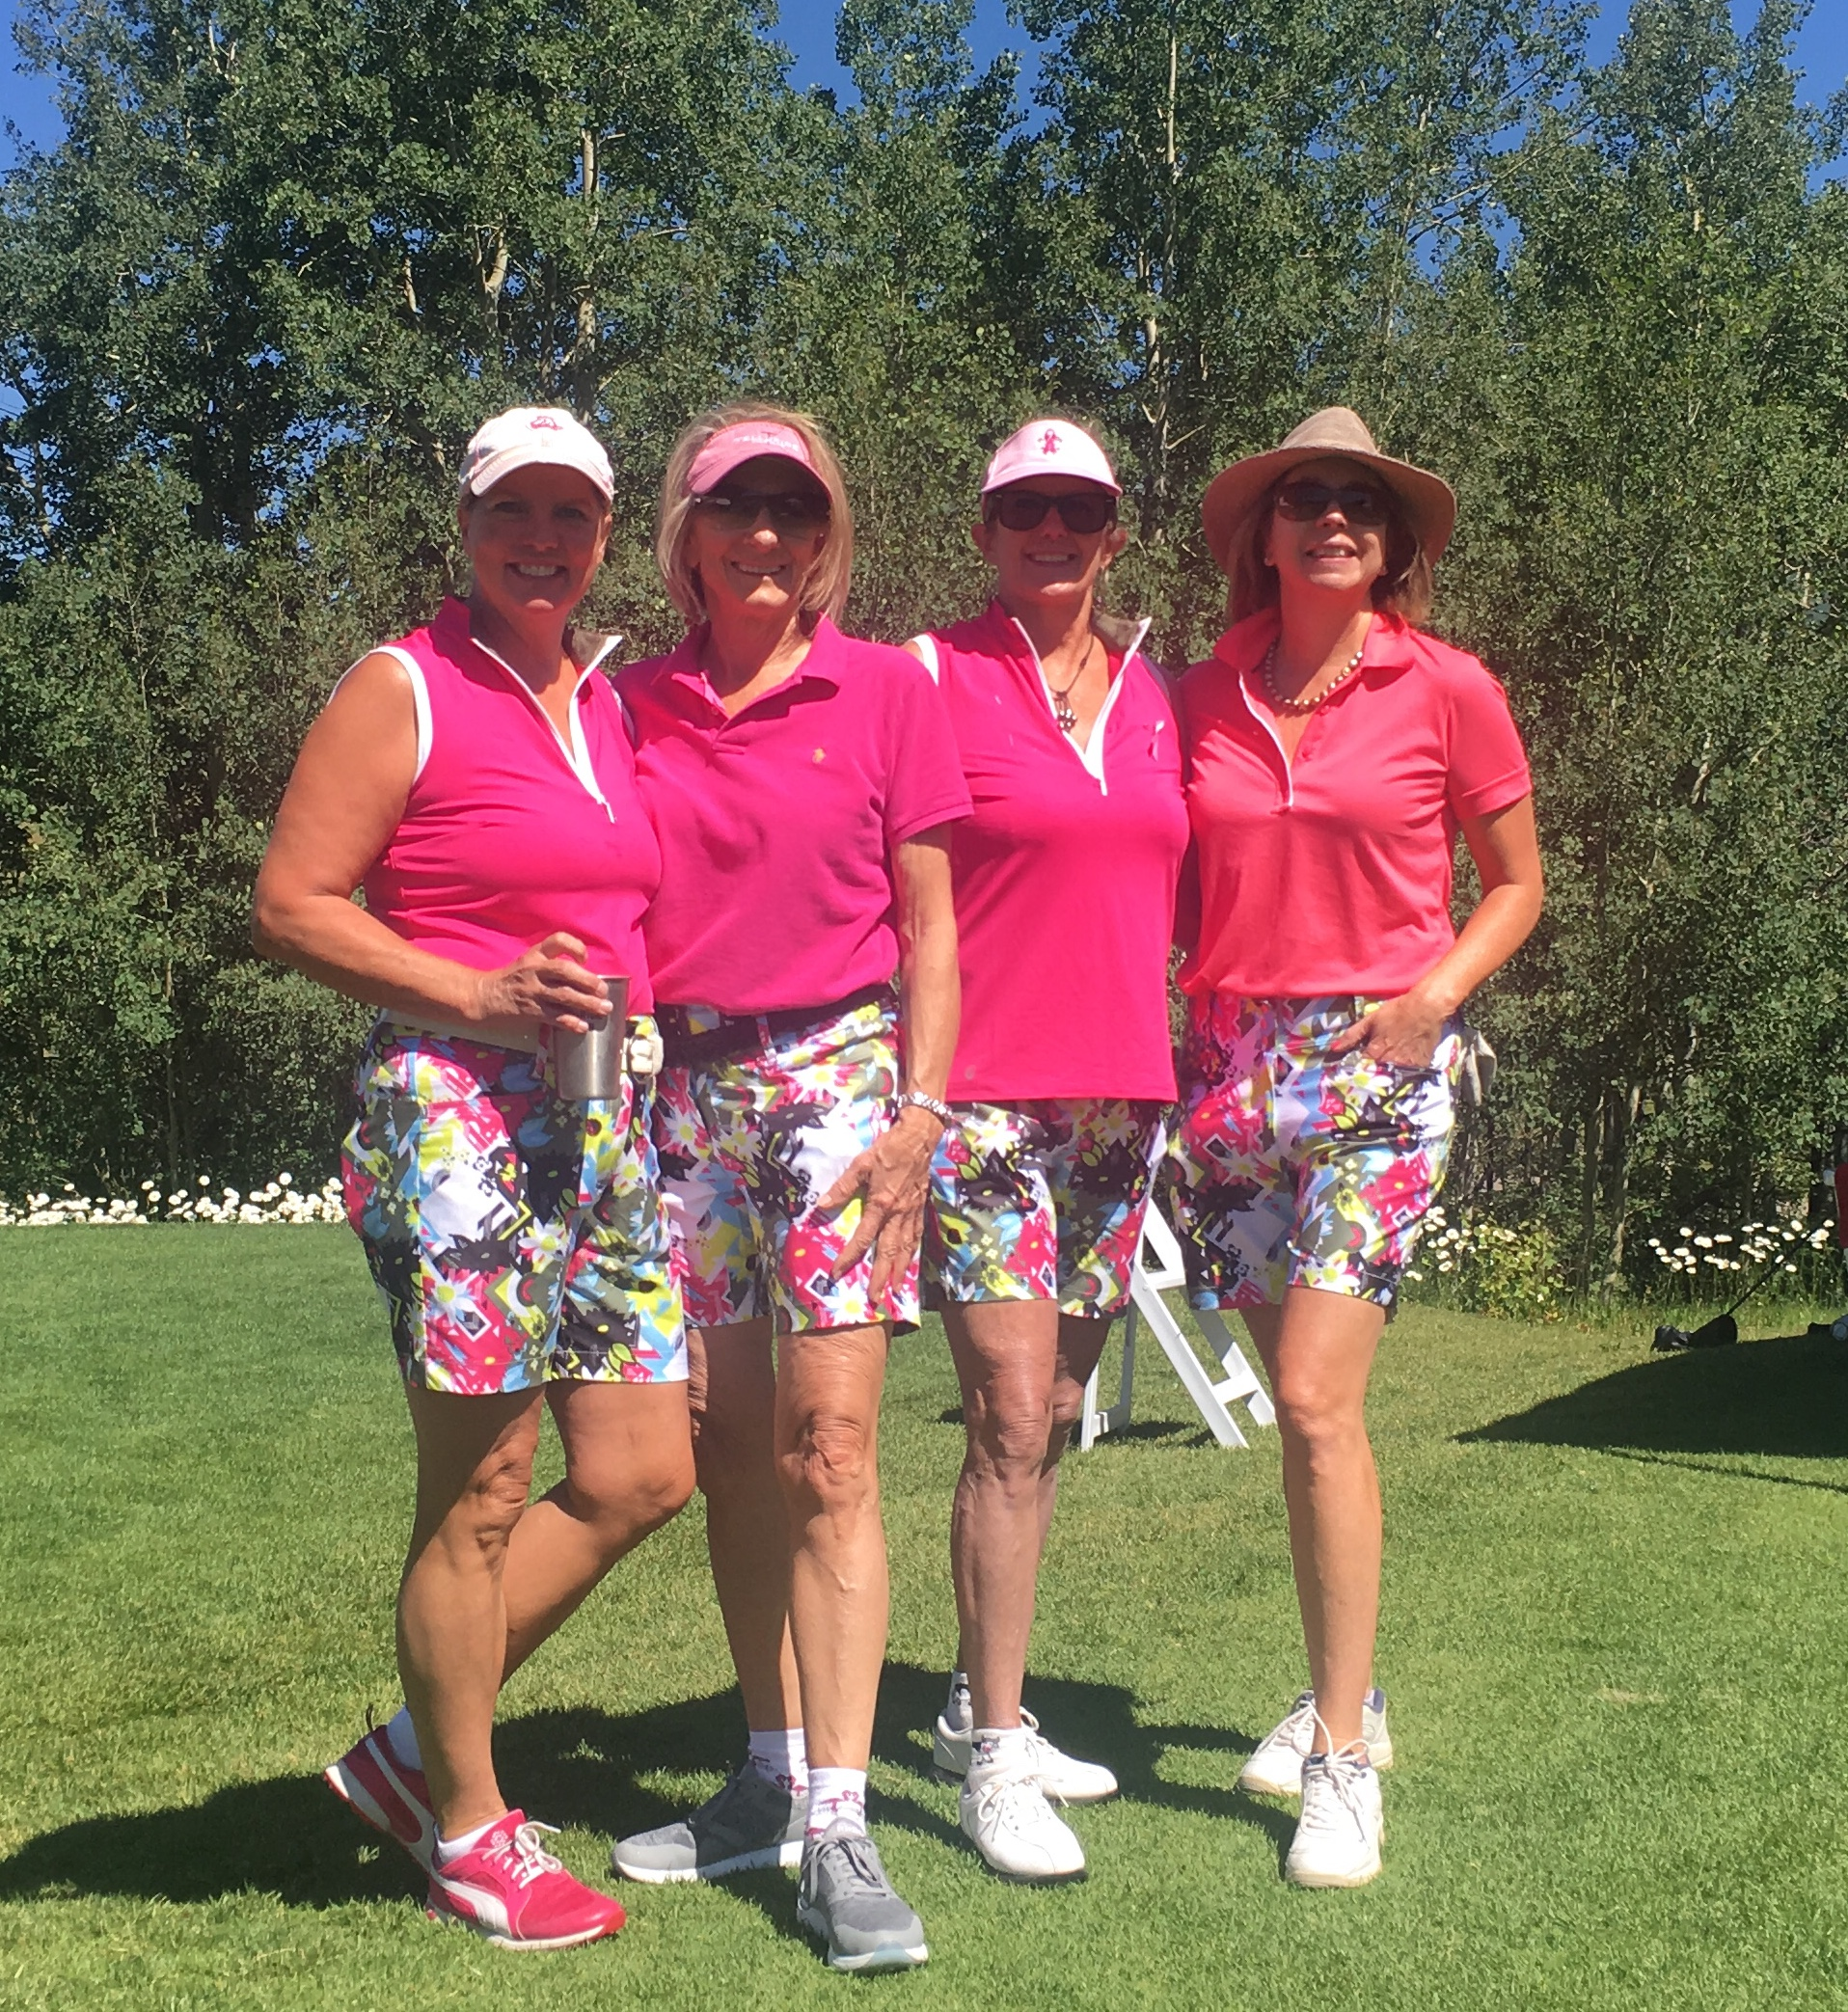 From right to left, Victoria Hutson; Pam Guillory; Andi Alexander; Peggy Raible.